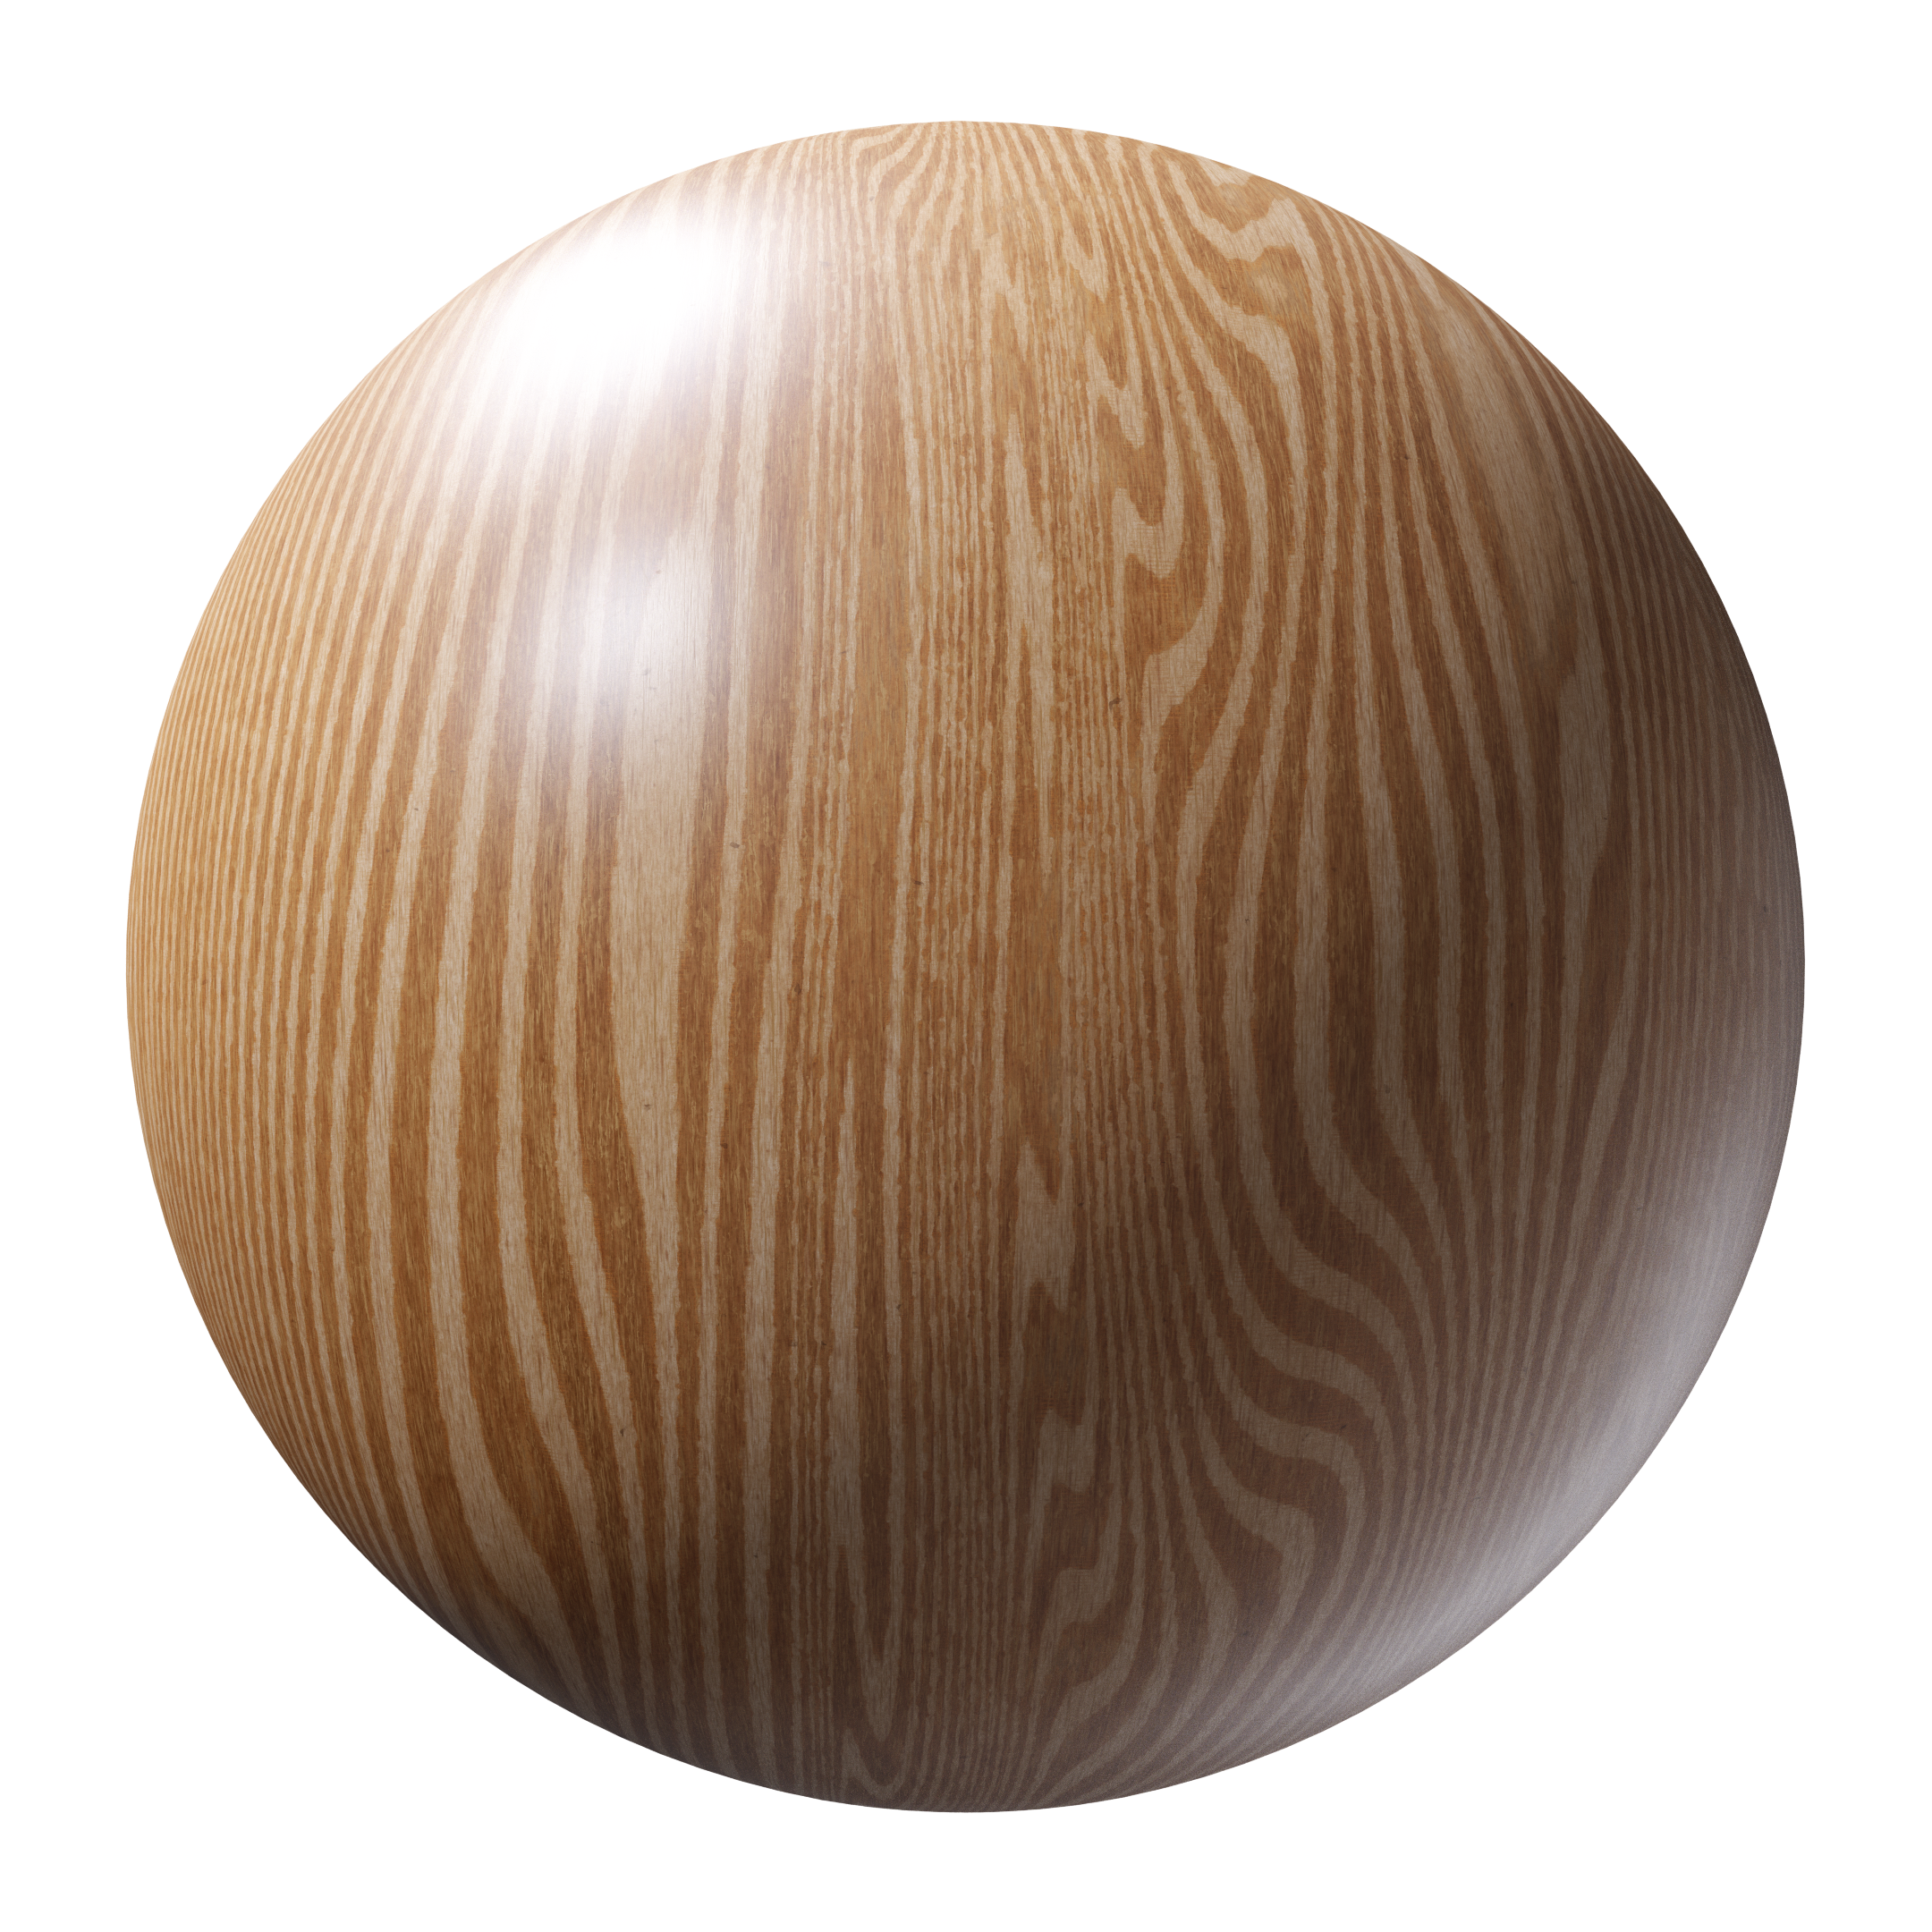 Tcom_Wood_OakVeneer_thumb1.png